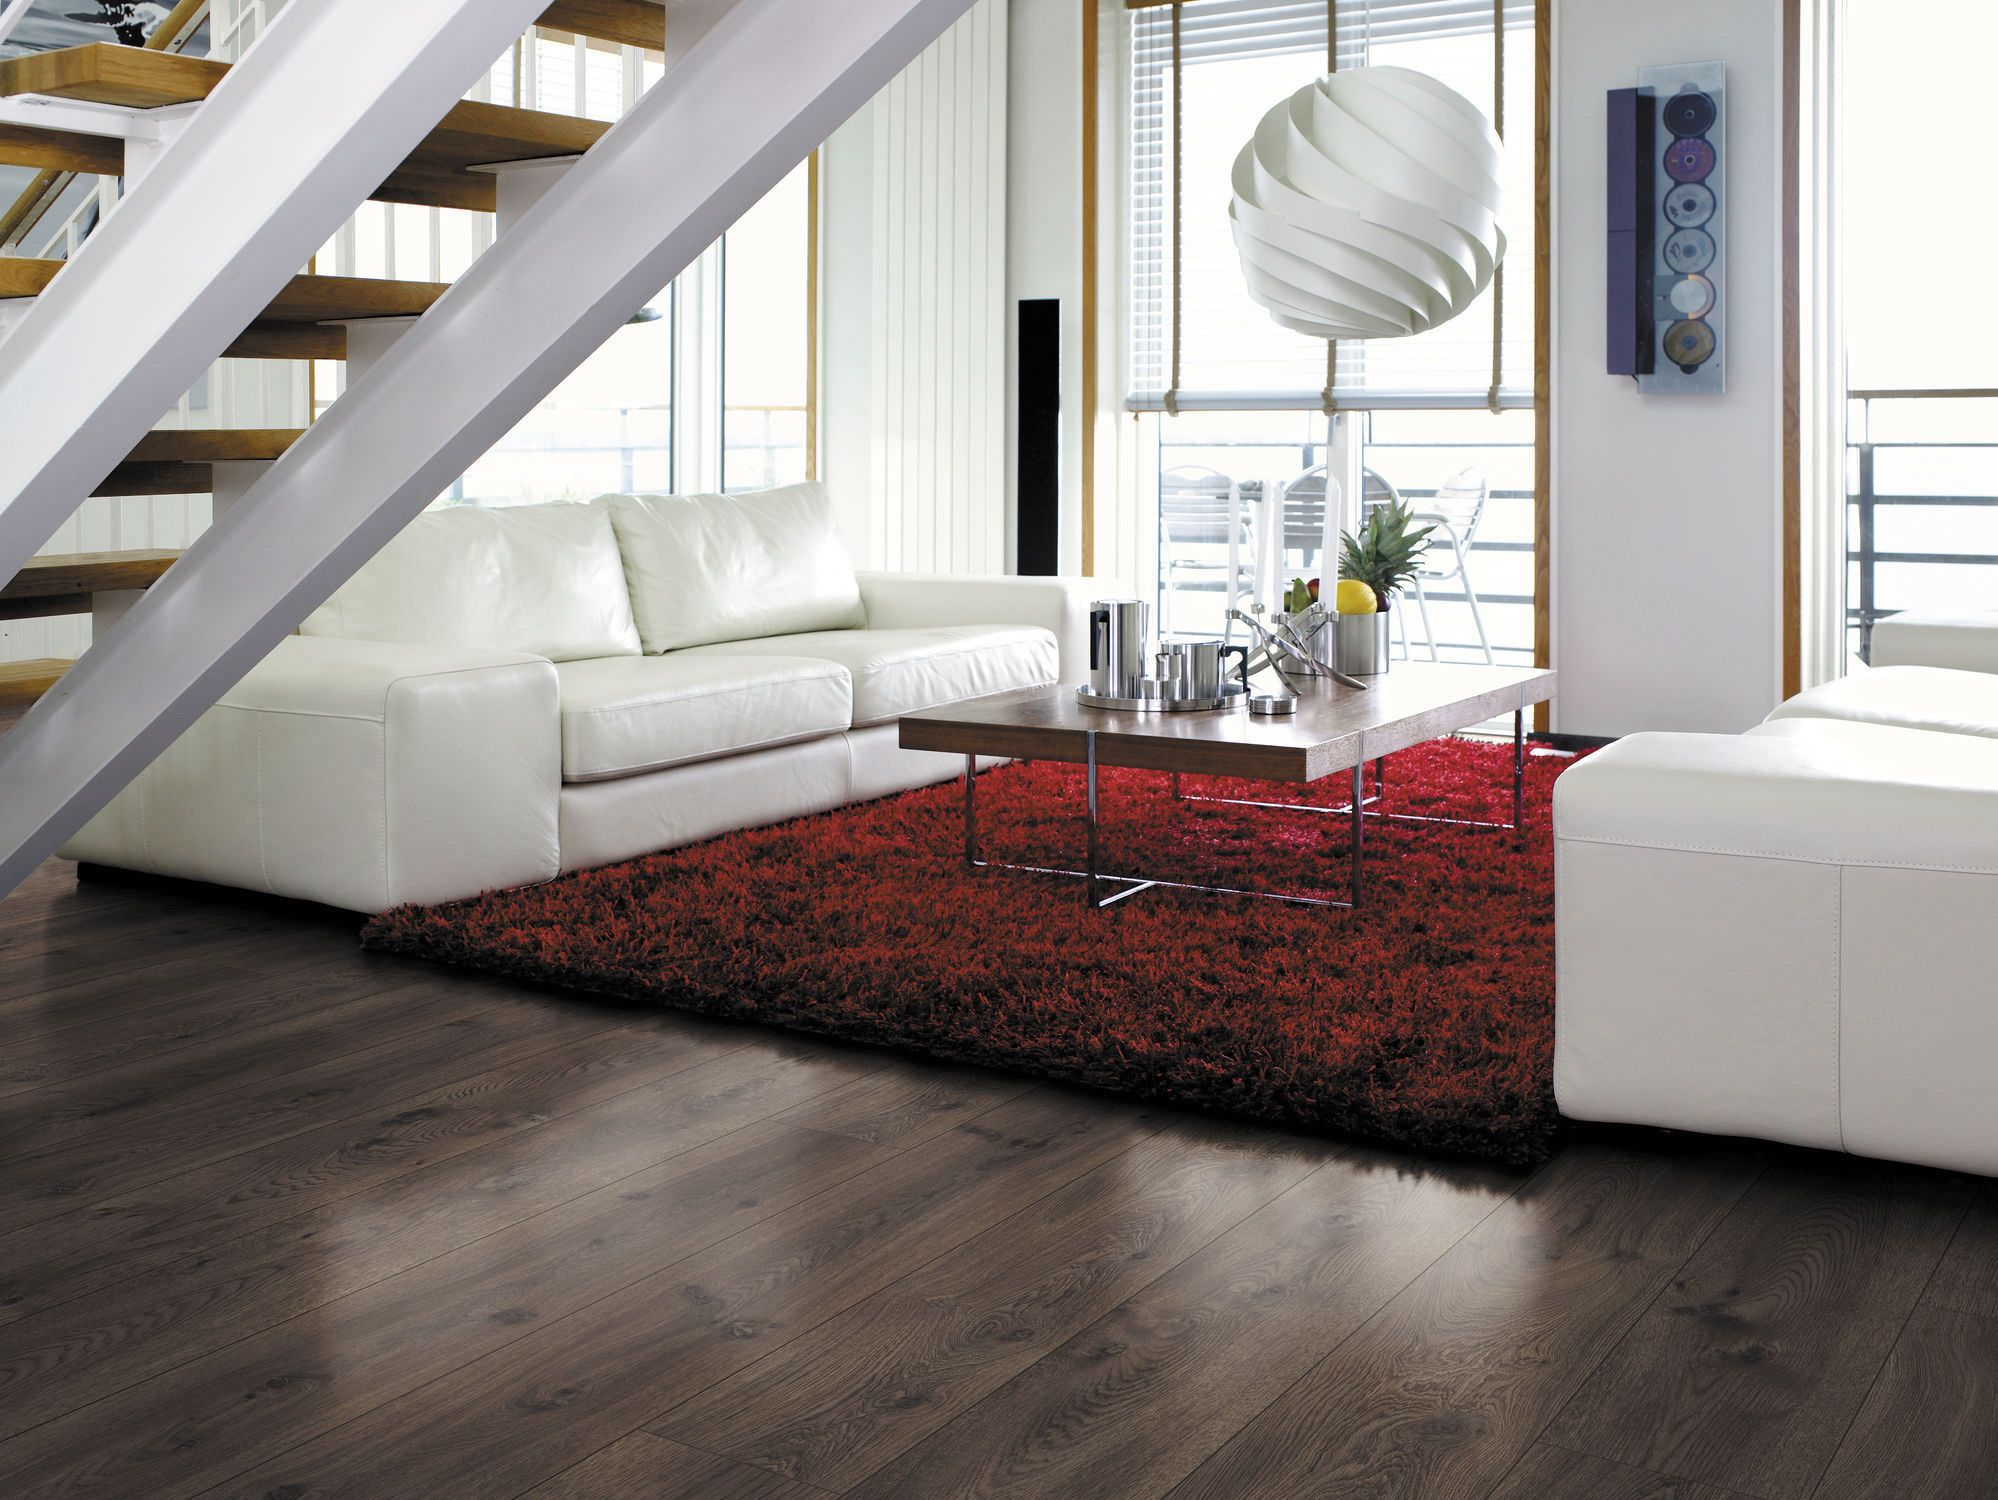 Empire Today Charming Chocolate Laminate Flooring 2 Within Size 2000 X 1333 Auf Scottsdale Walnut